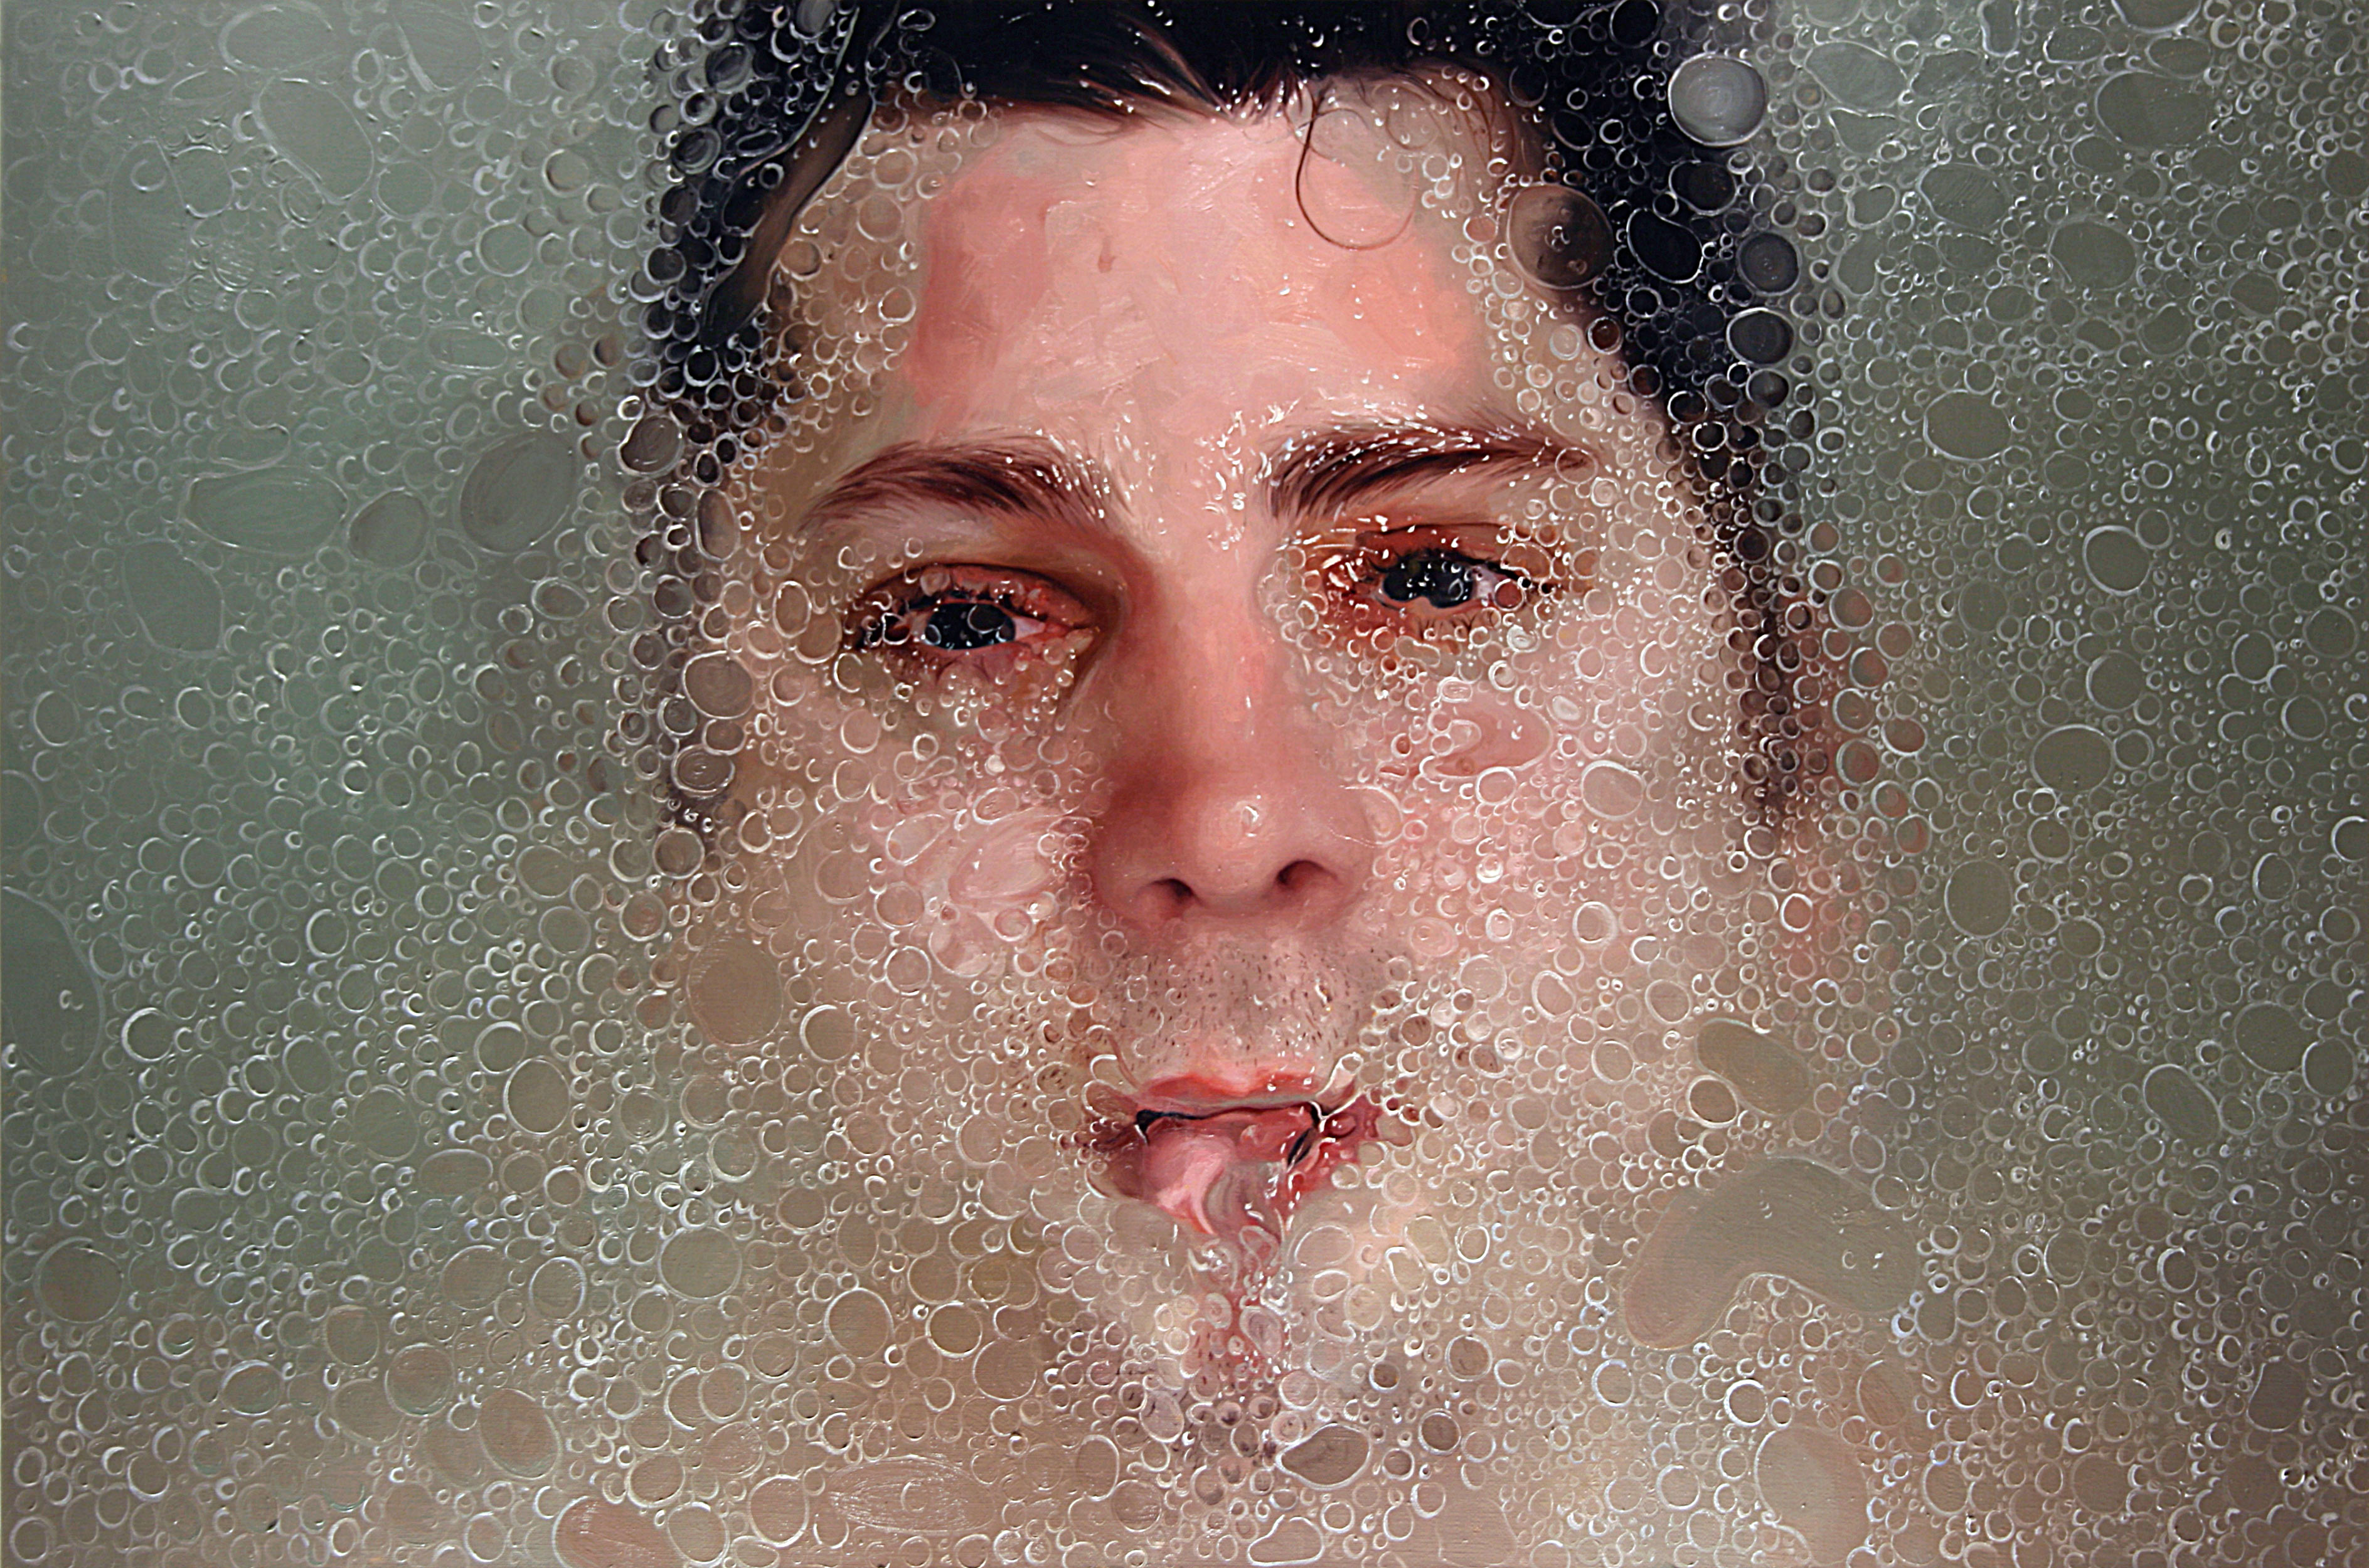 Circle by Alyssa Monks - Kopie - Kopie